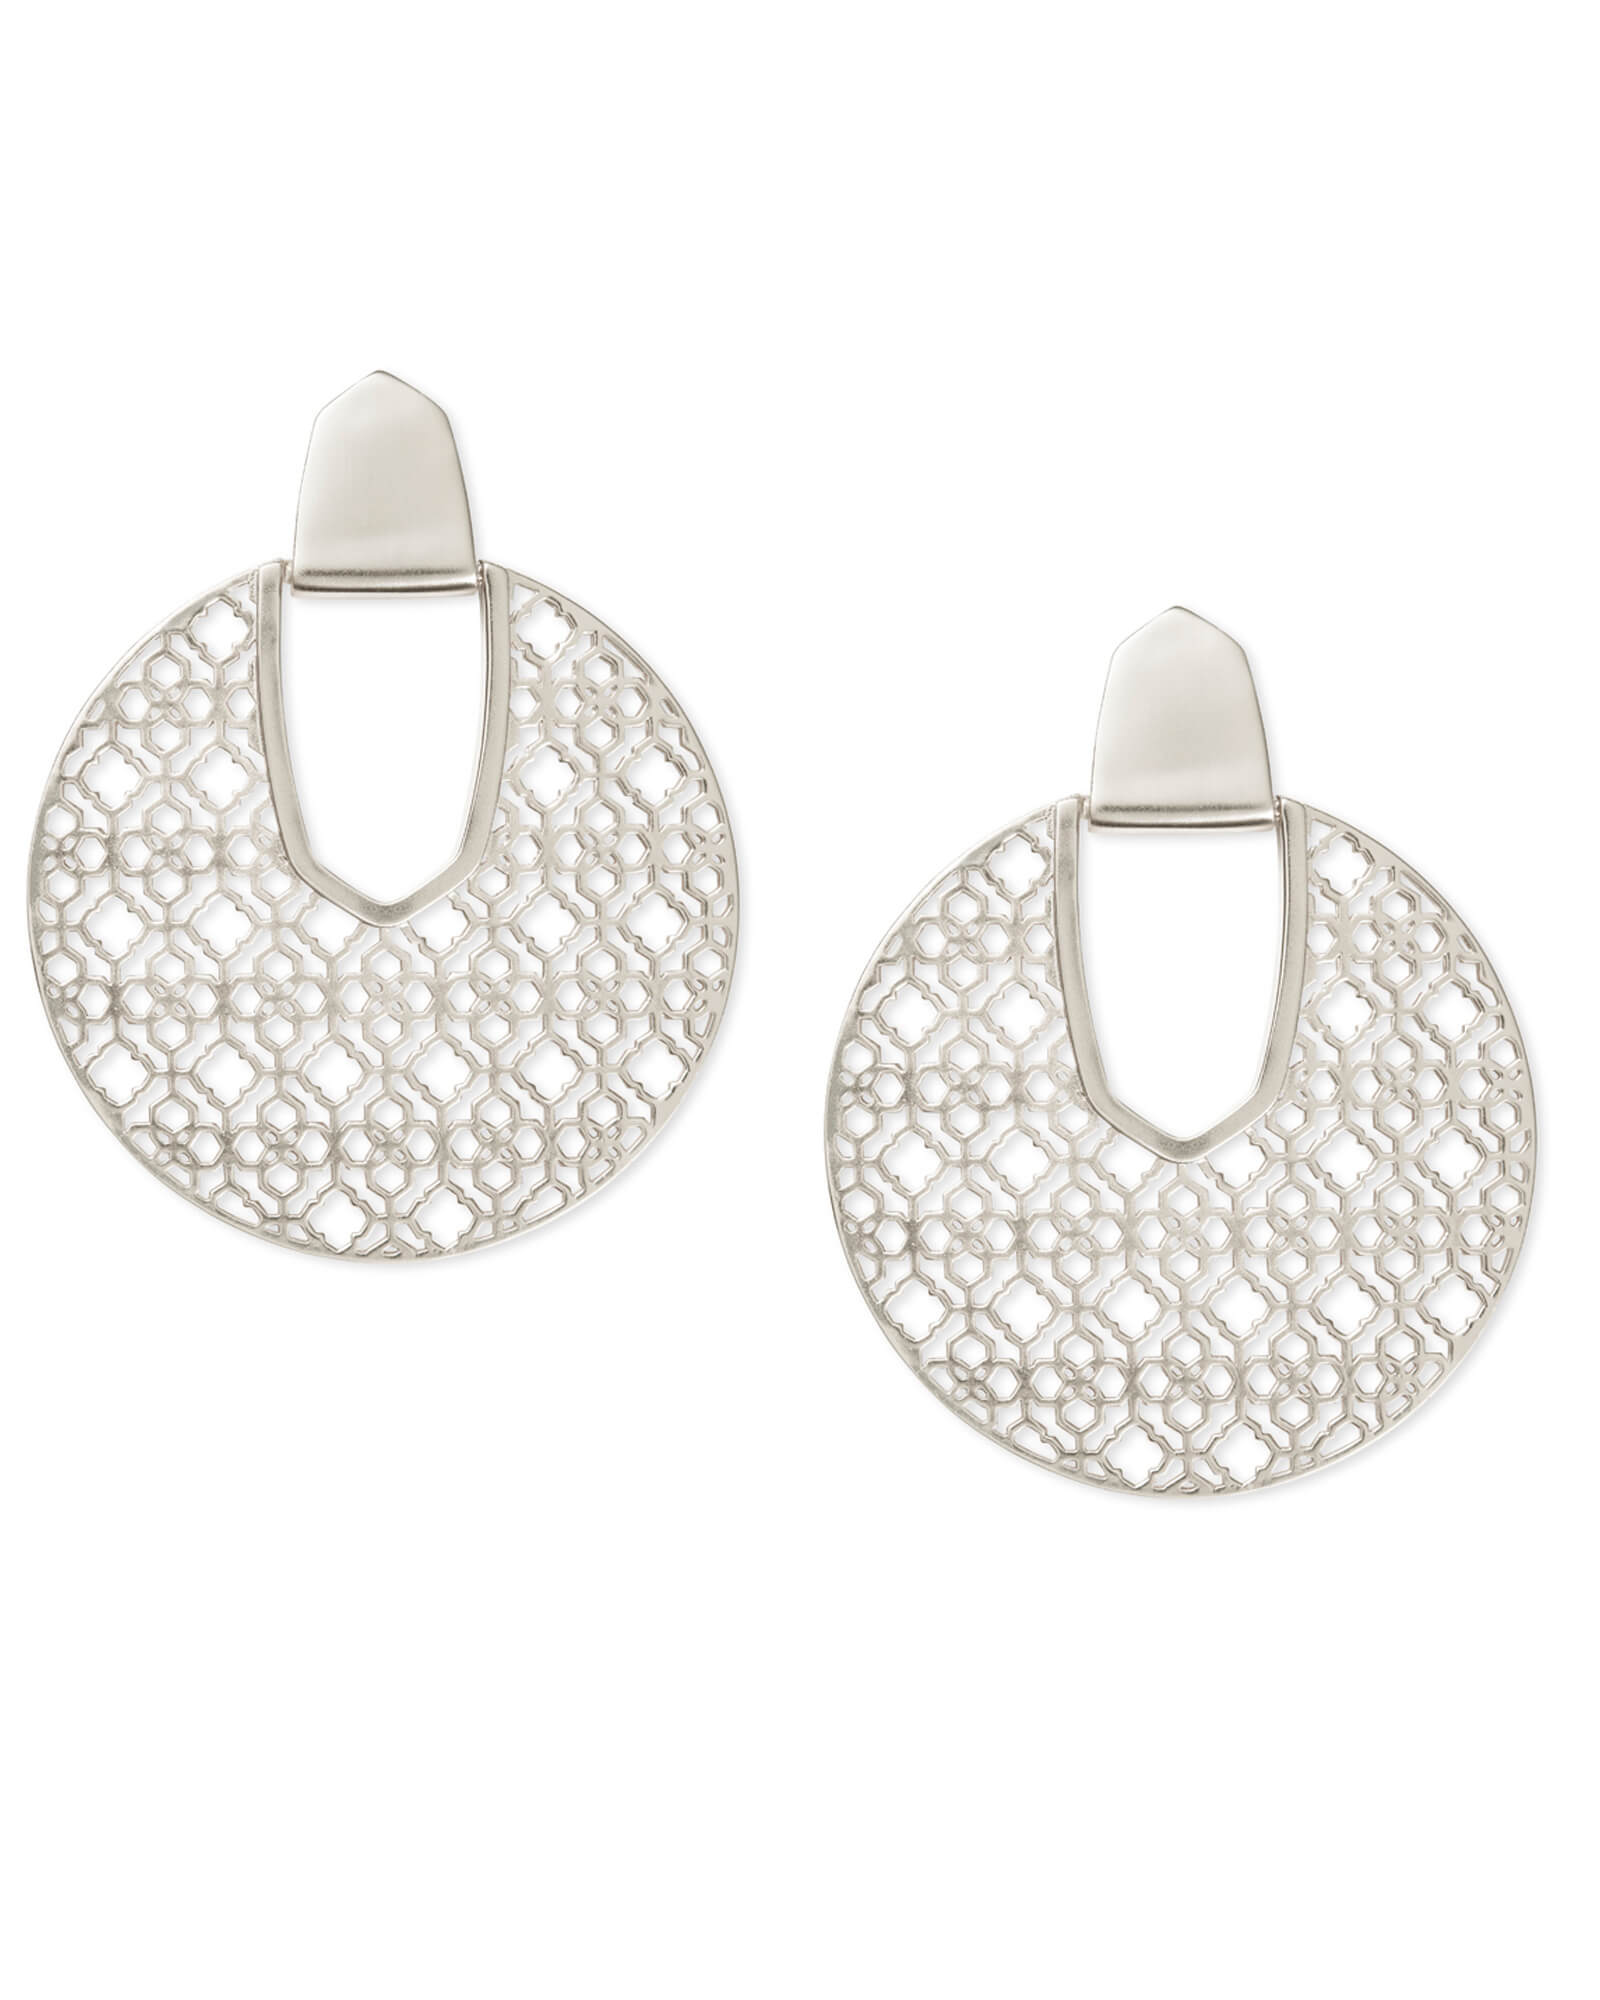 Kendra Scott Diane Silver Statement Earrings In Silver Filigree